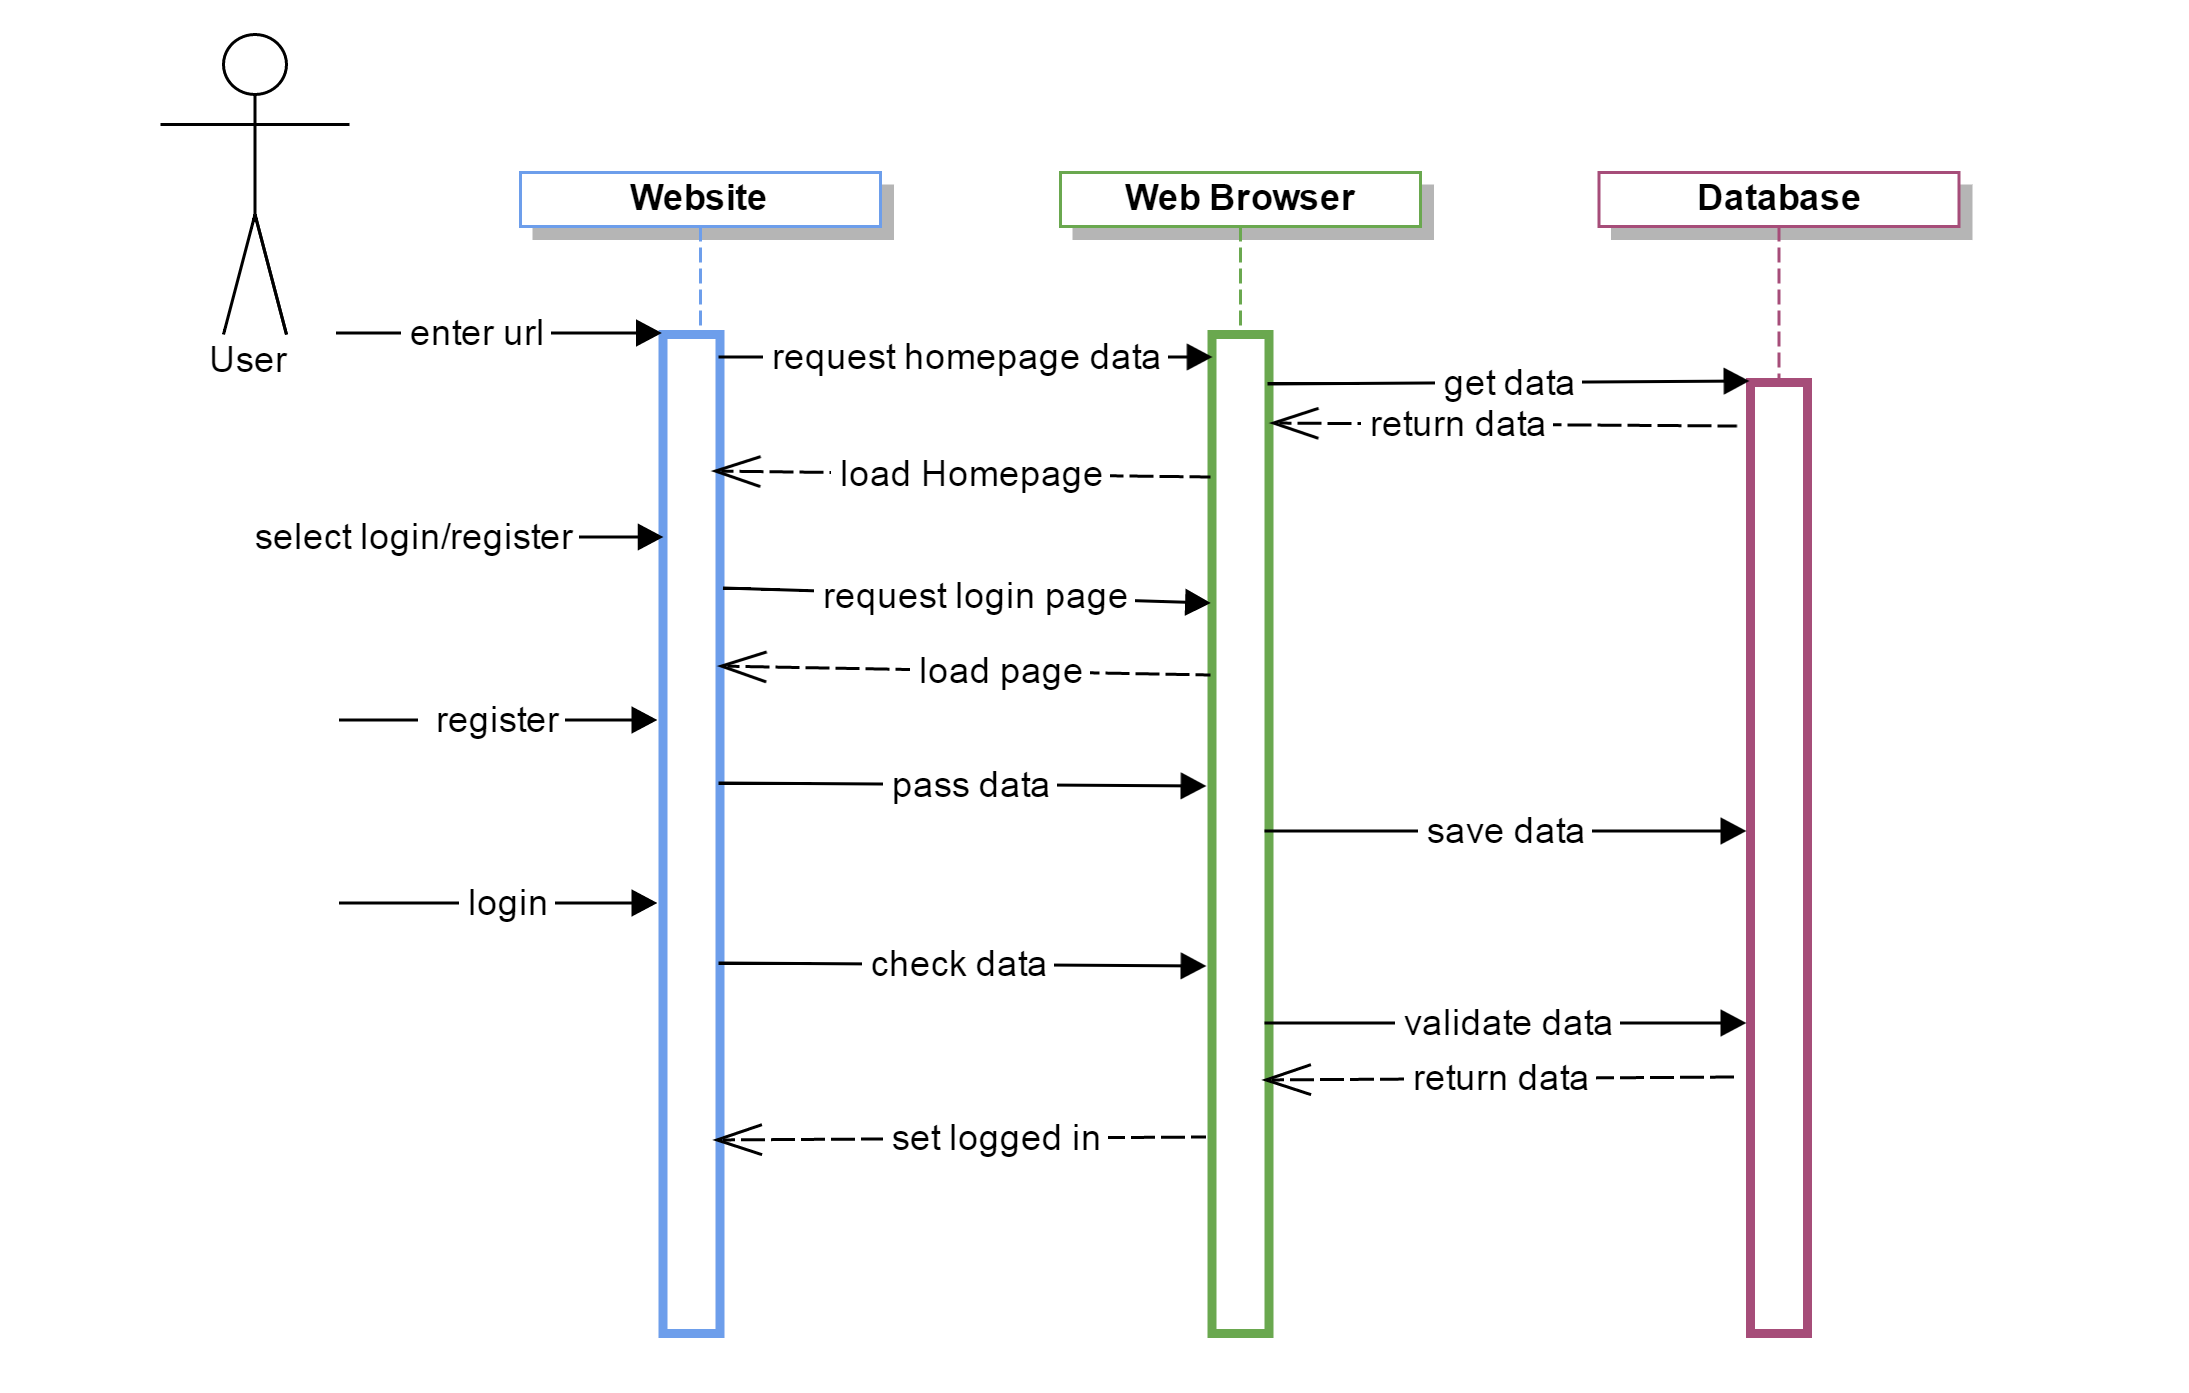 Sequence Diagram - User: Login / Register - Be Seated